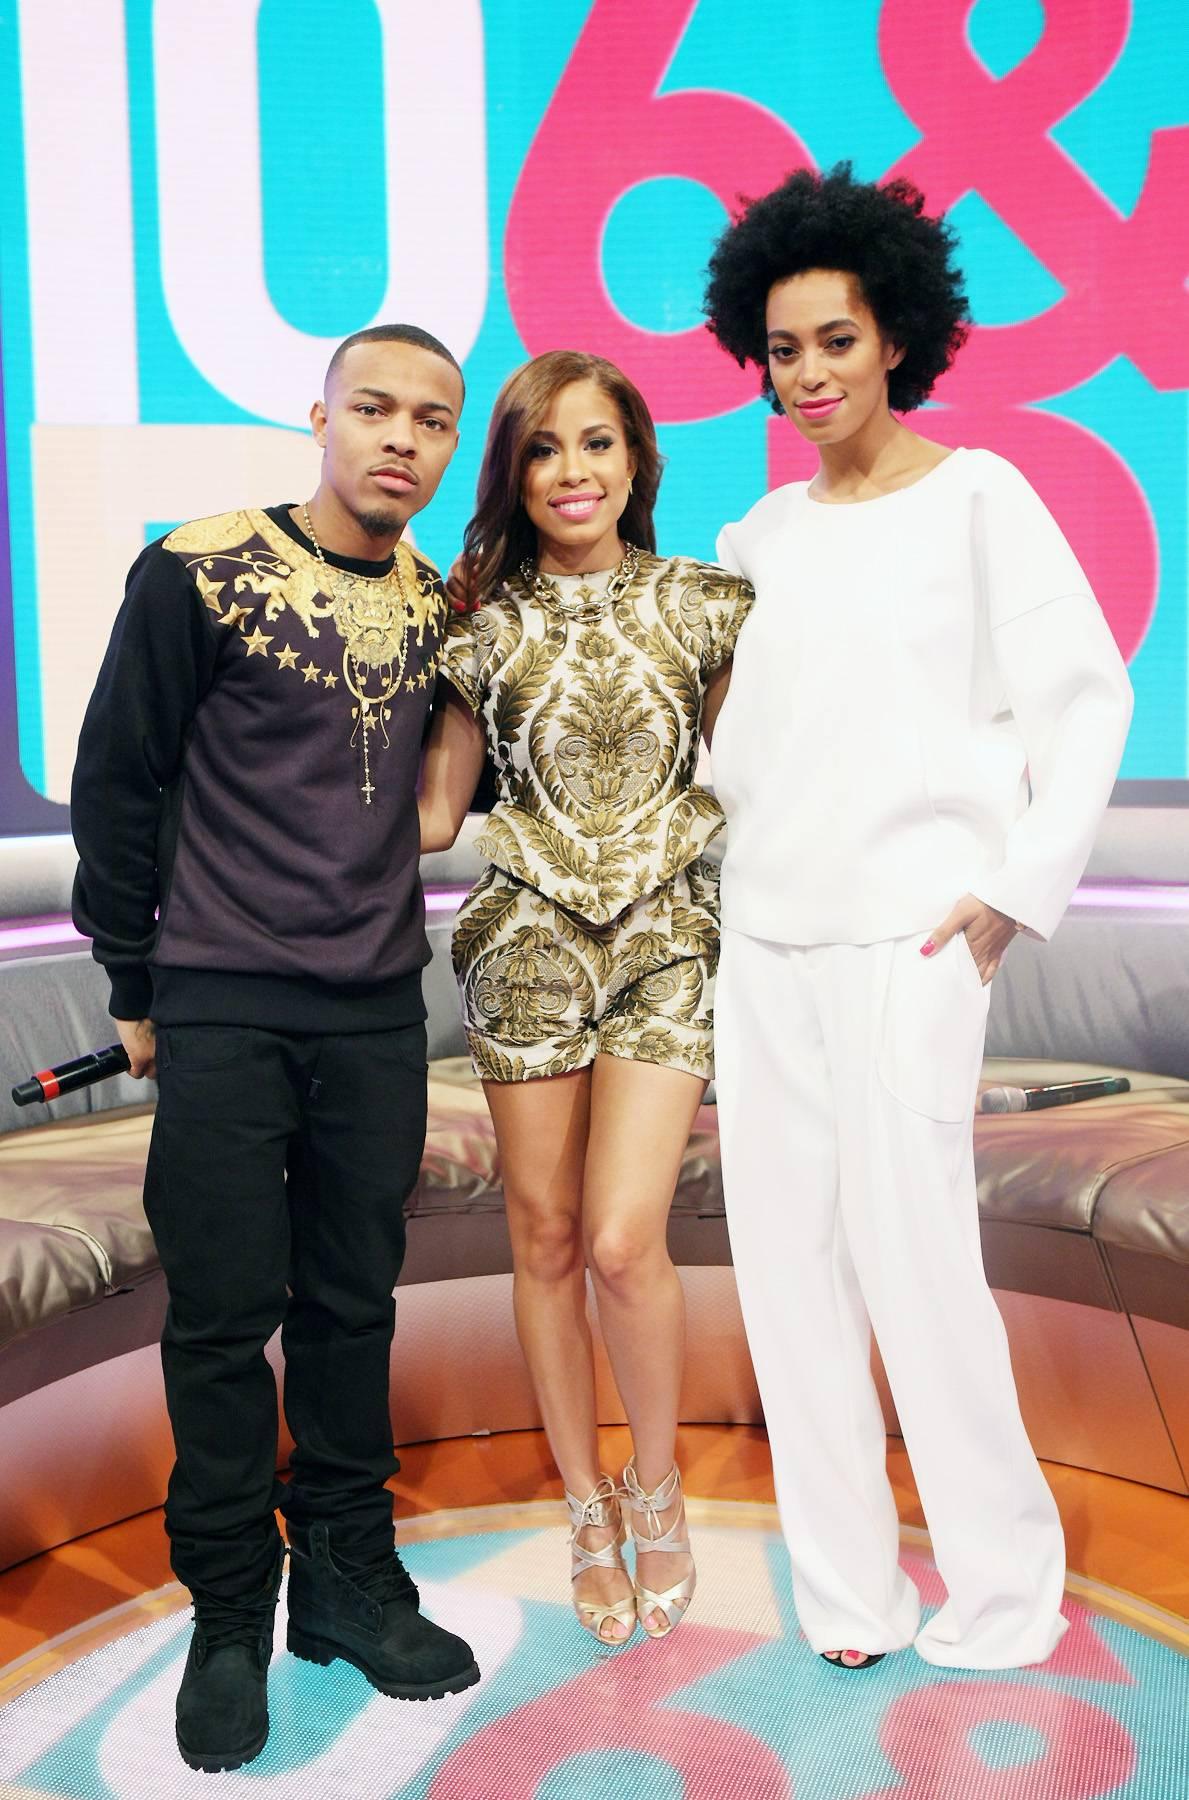 Fashion Fair - Bow Wow, Keshia Chante and Solange Knowles all pose for the camera. (Photo: Bennett Raglin/BET/Getty Images for BET)